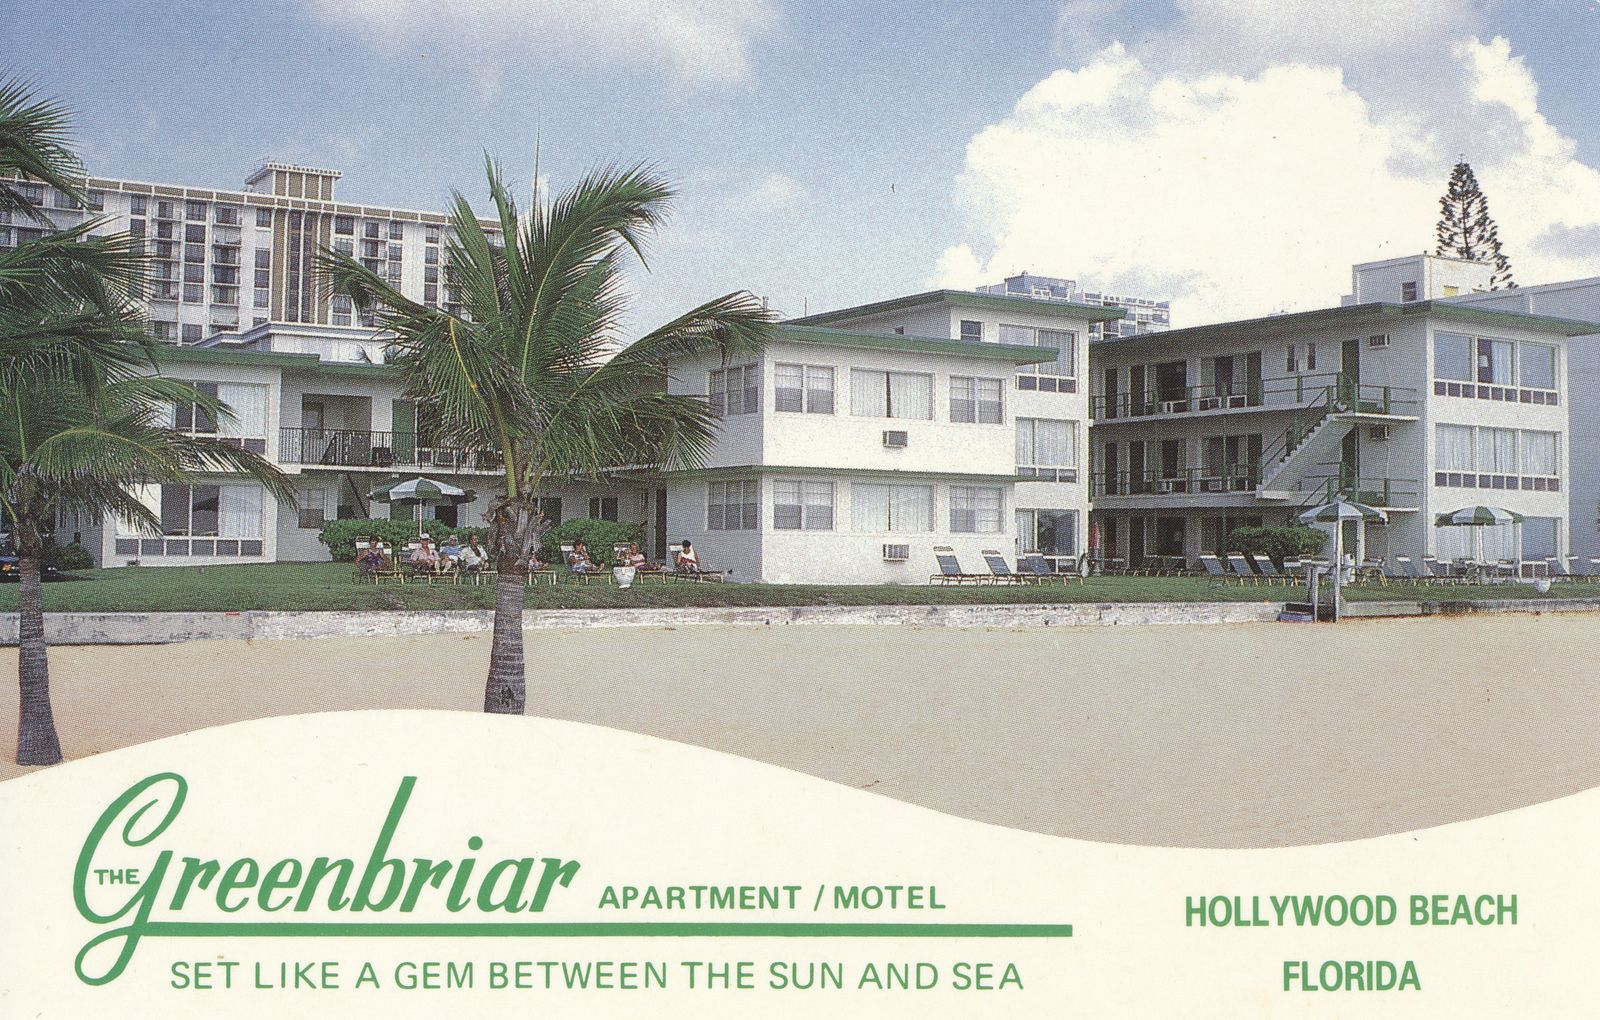 The Greenbriar Apartments Motel Hollywood Beach Florida Hollywood Beach Hollywood Florida Florida Hotels